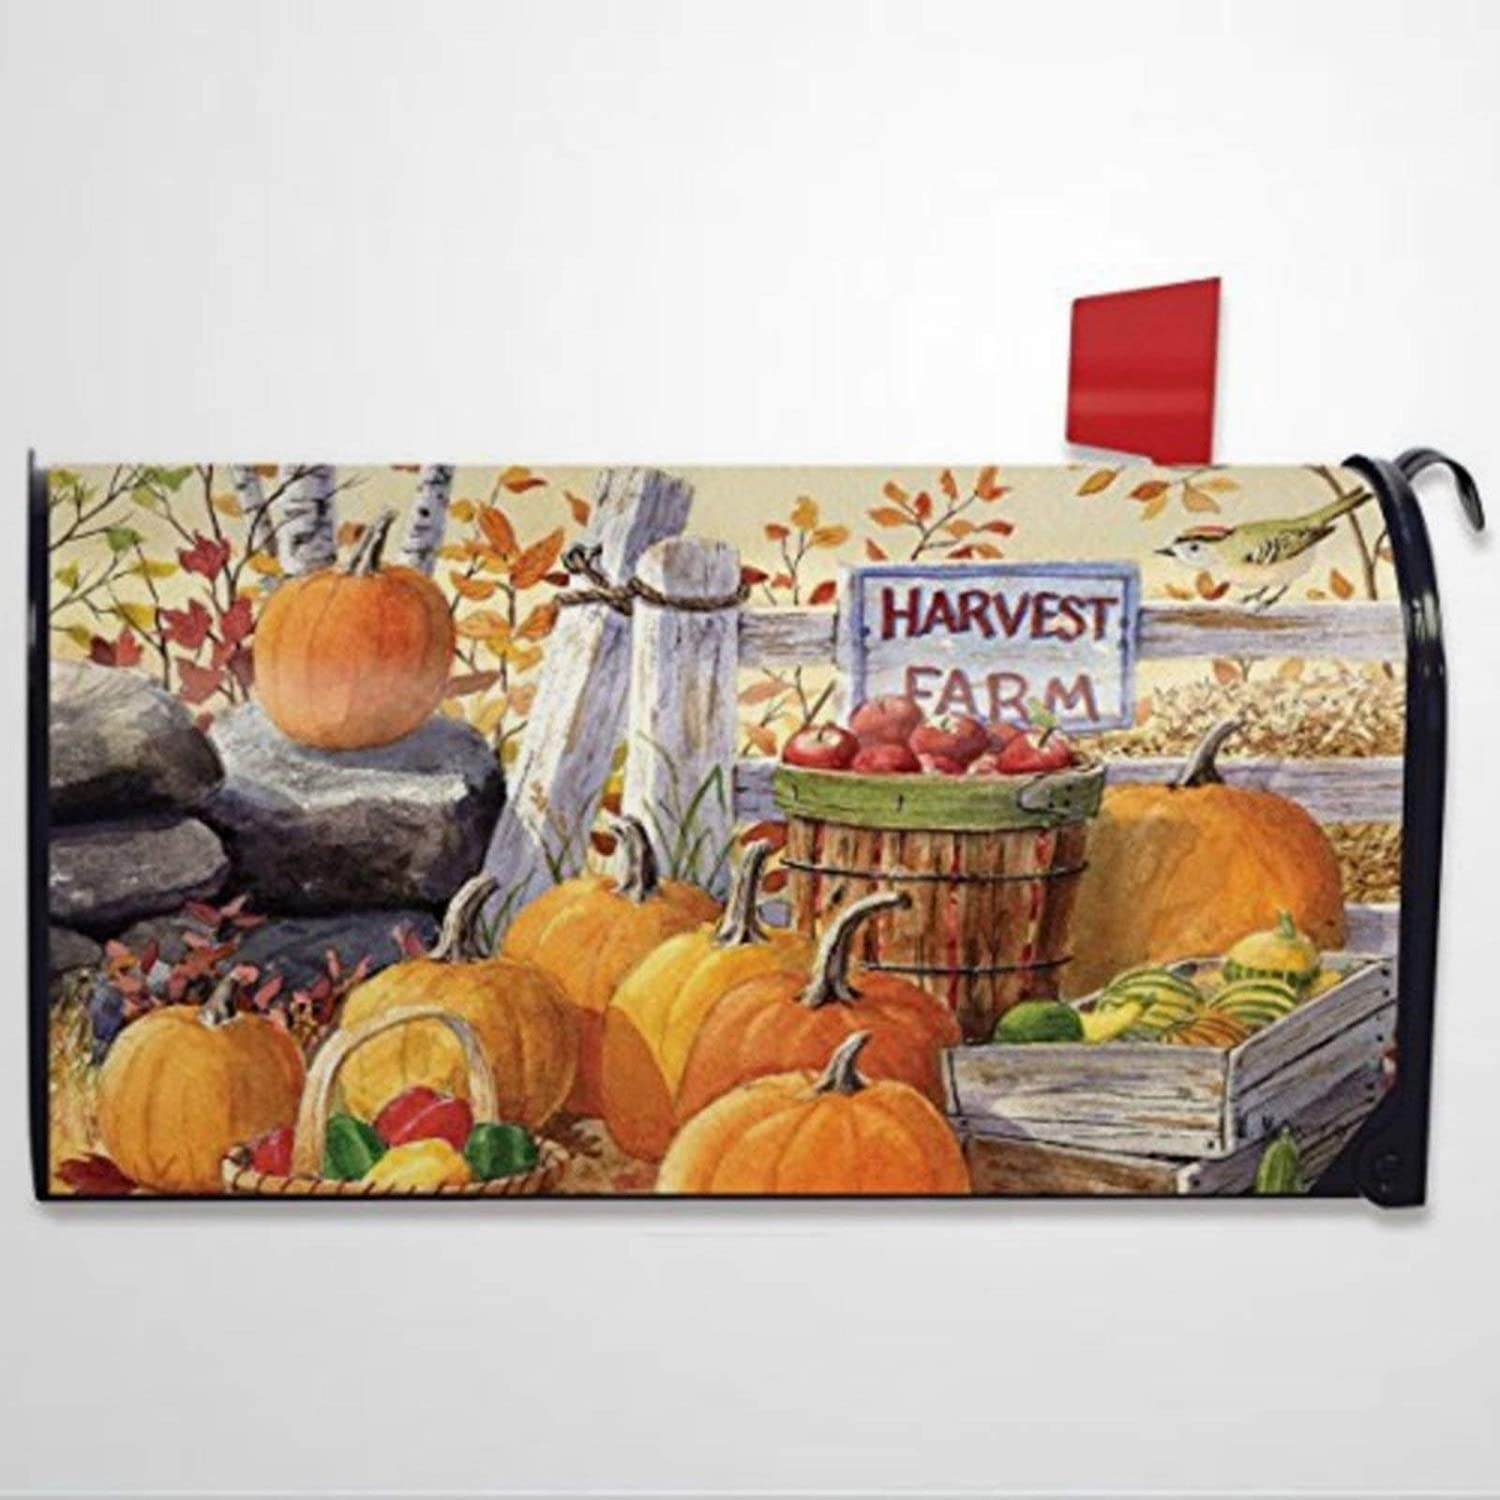 BYRON HOYLE Harvest Farm Fall Pumpkins Apples Mailbox Covers Magnetic Mailbox Wraps Post Letter Box Cover Home Garden Yard Outdoor Decor